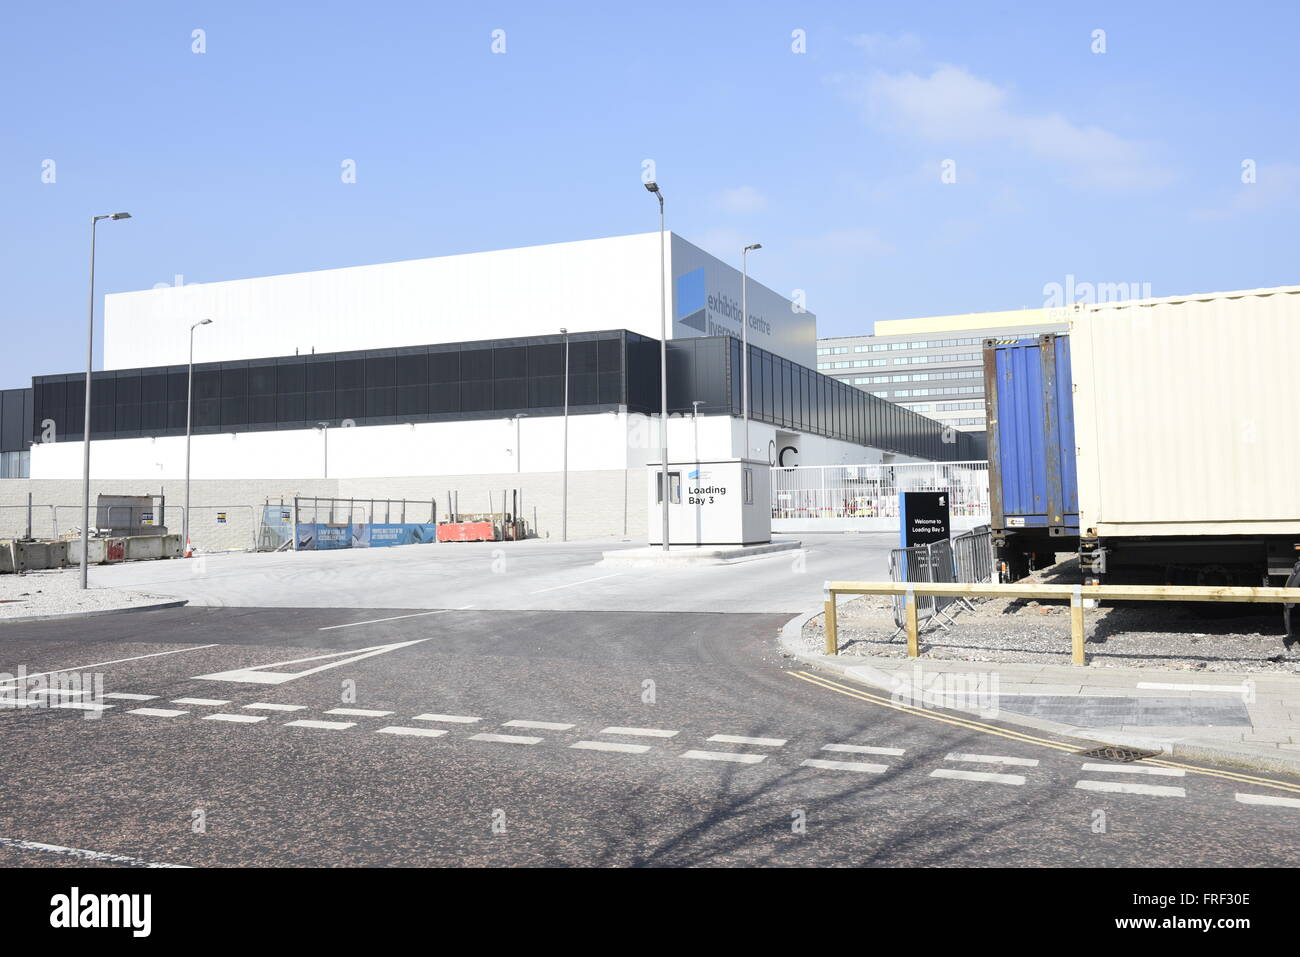 Loading bay entrance at the Exhibition Centre Liverpool, an 8,100m² purpose-built exhibition centre - Stock Image